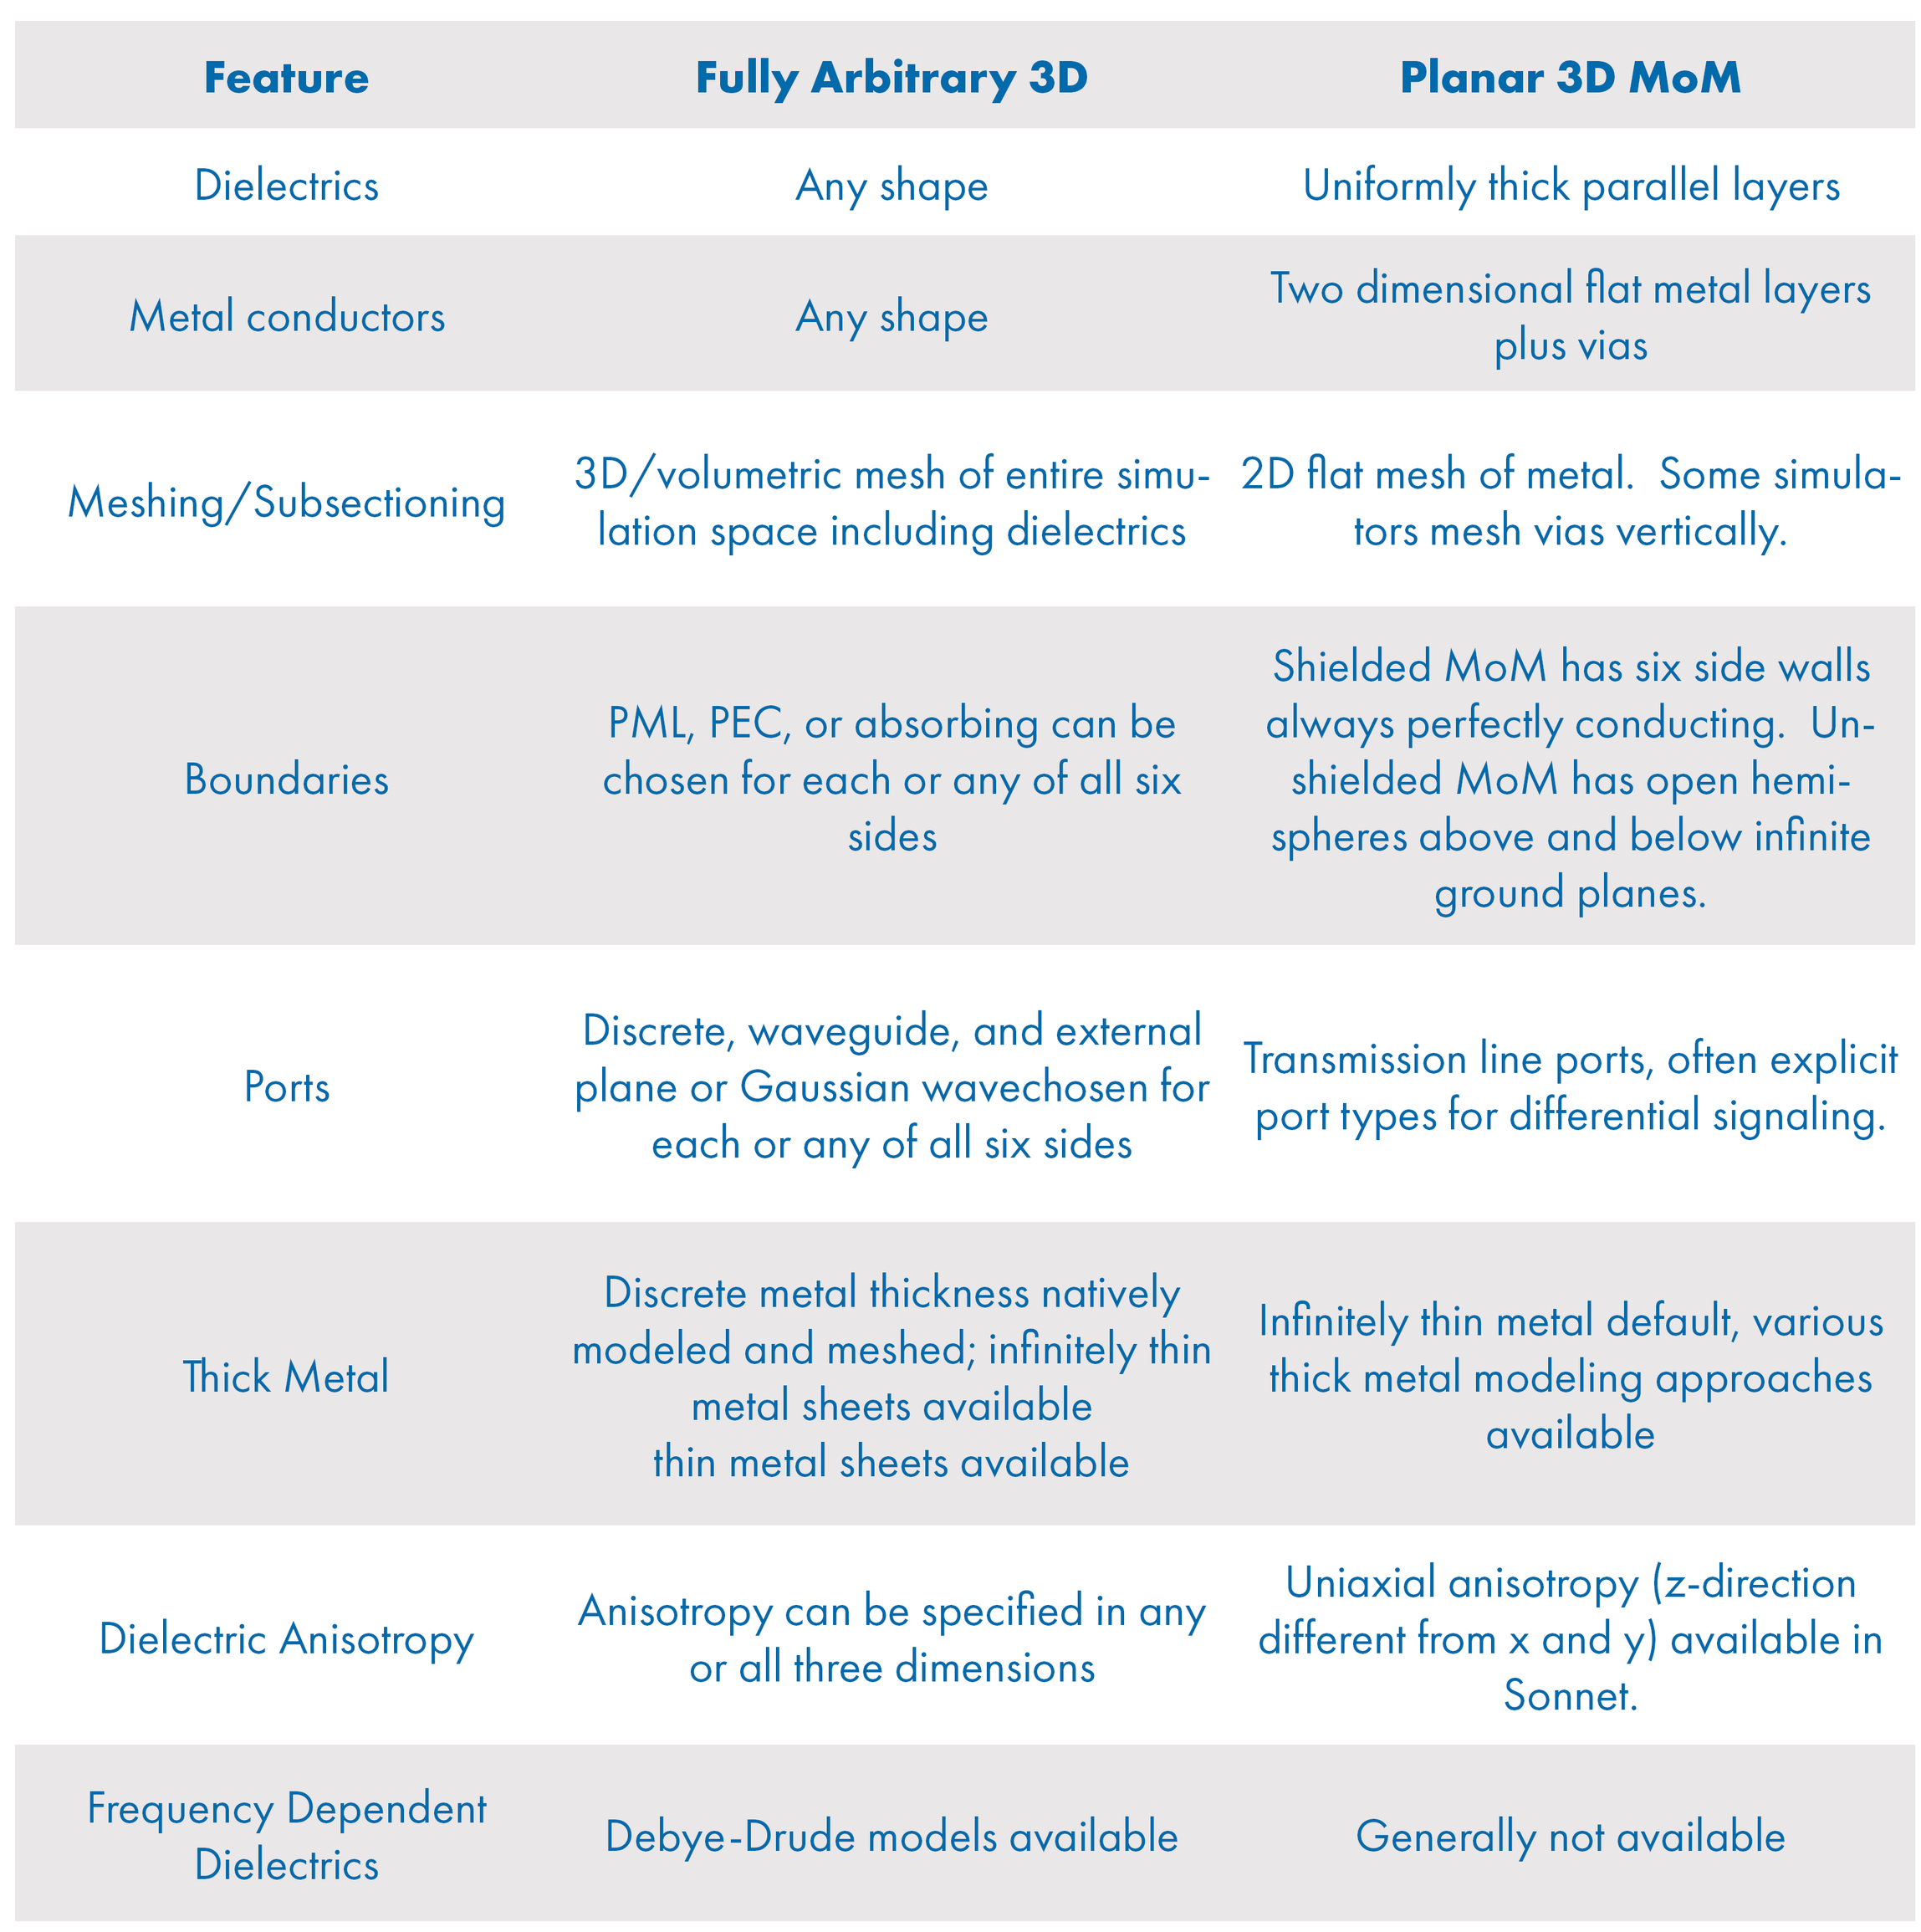 Table 2: Feature comparison between fully arbitrary 3D and planar 3D MoM